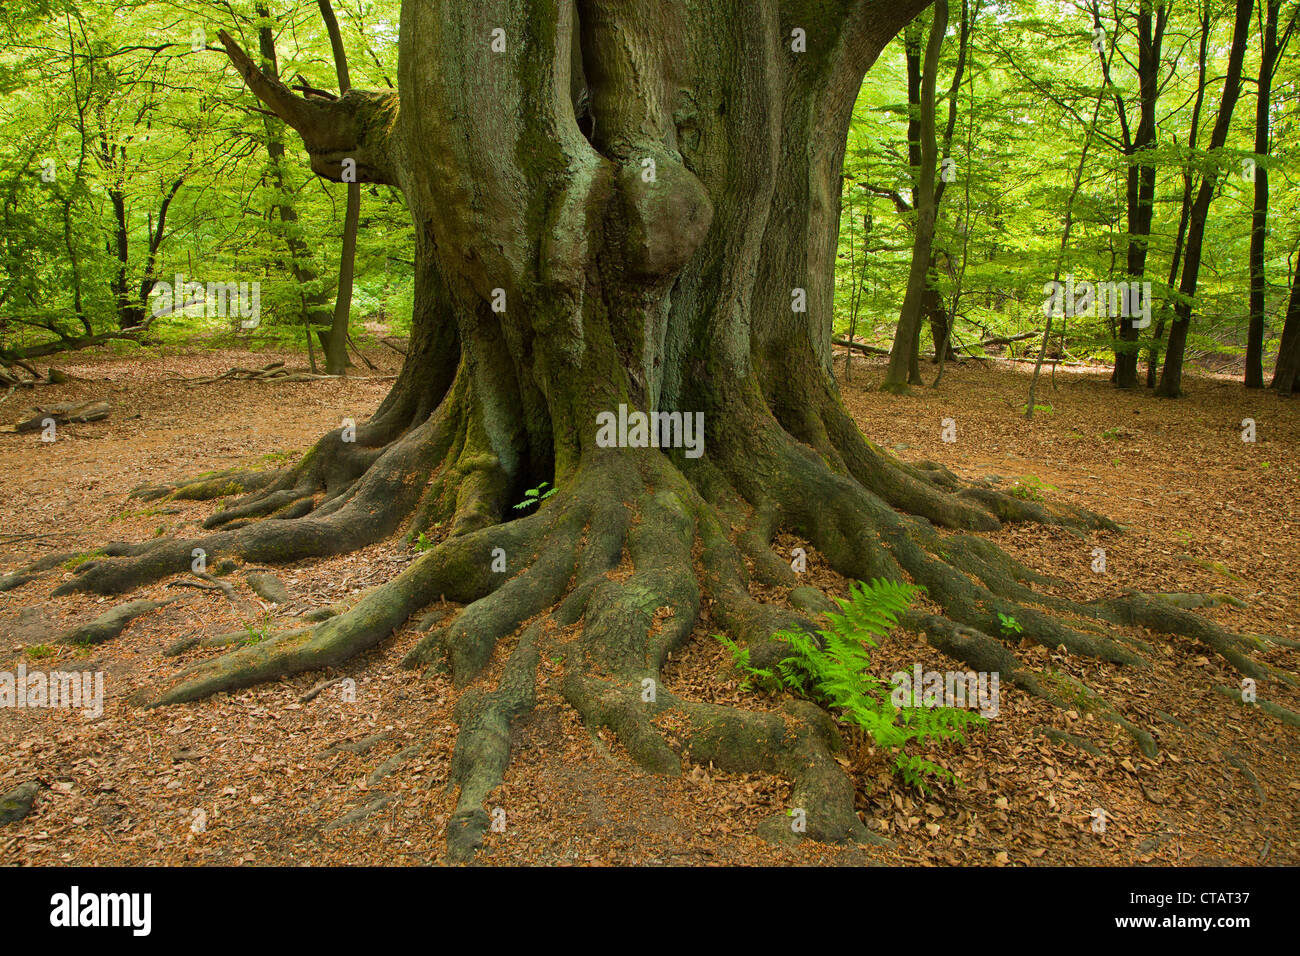 Fern between the roots of an old beech, nature reserve Urwald Sababurg, Reinhardswald, Hesse, Germany, Europe - Stock Image